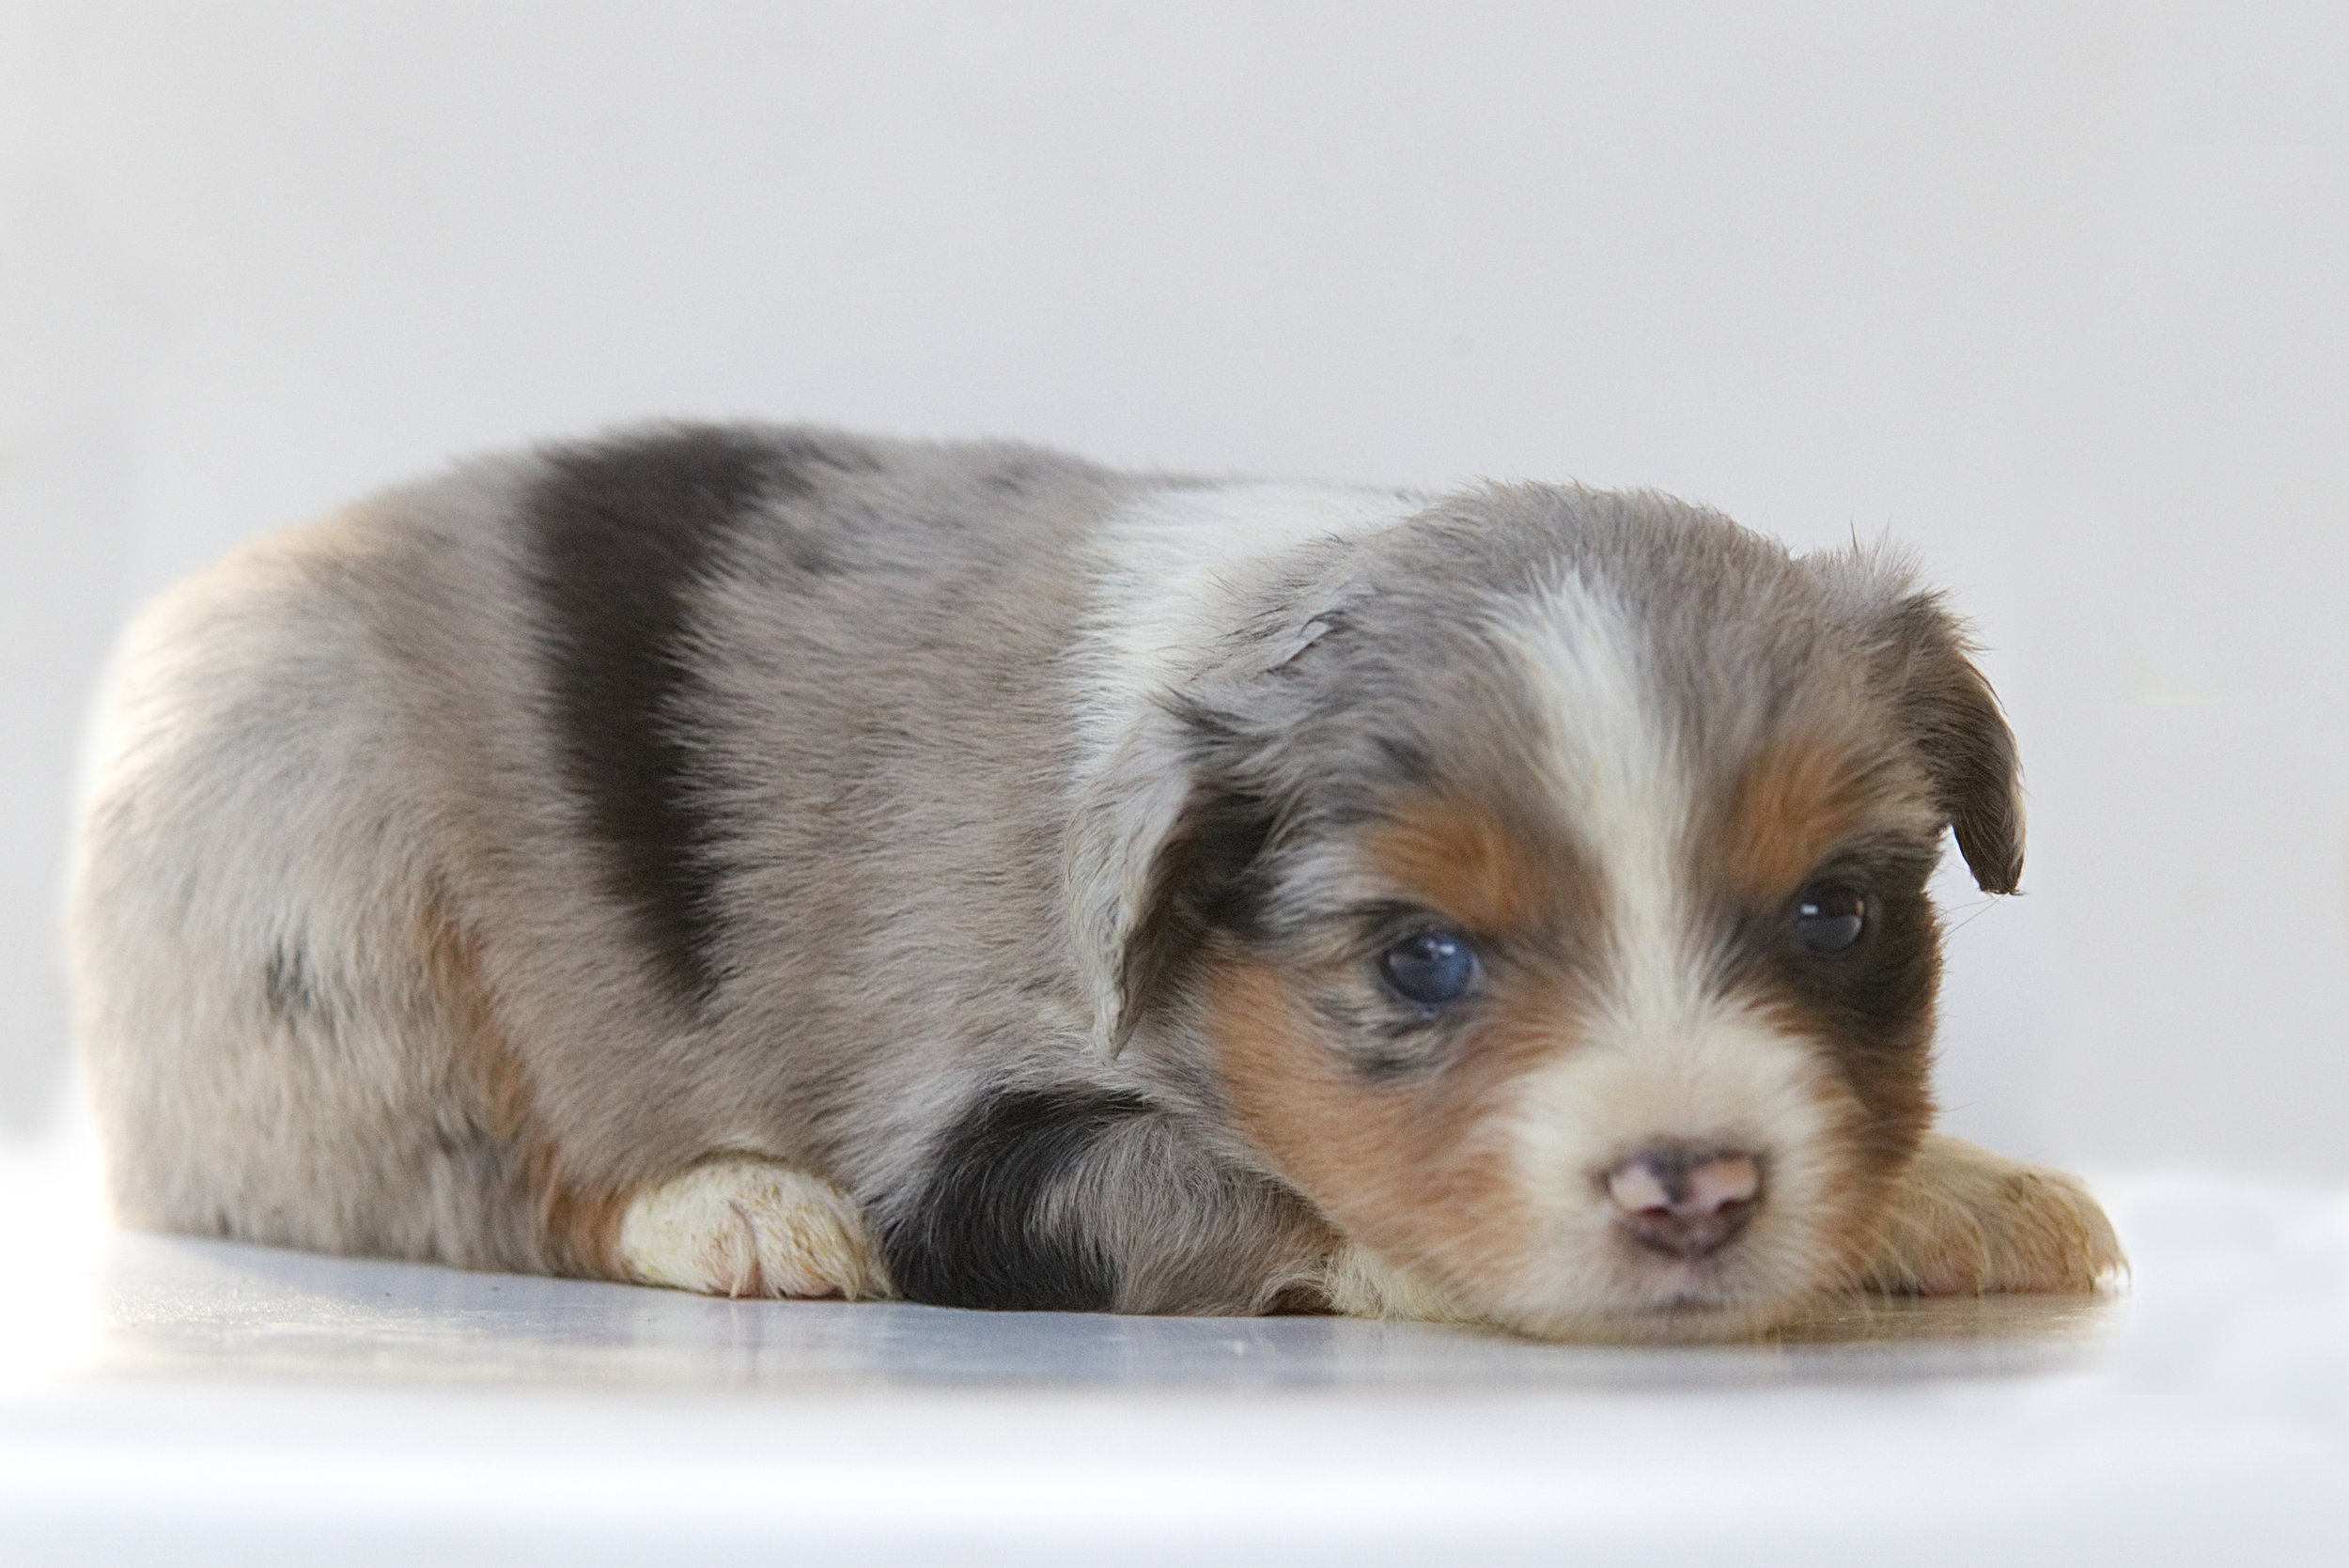 Becky Blue merle Female  May have one partial blue eye. ASDR Registered Ready May 22nd